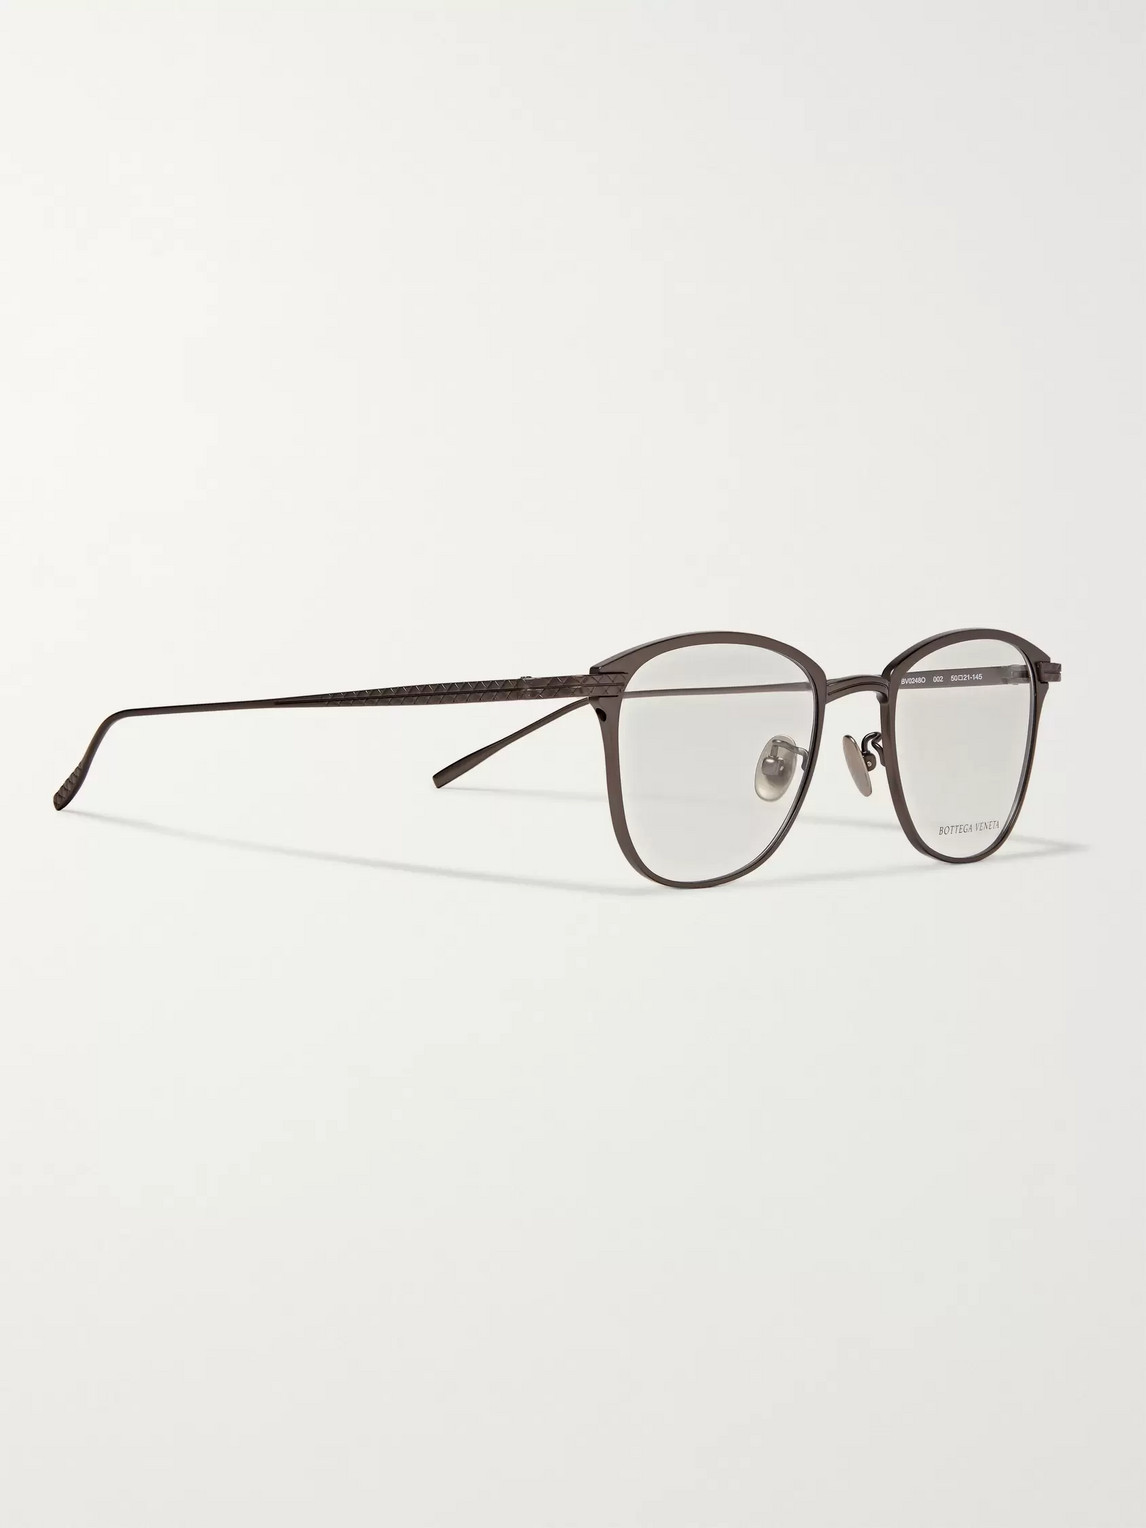 Bottega Veneta Opticals D-FRAME TITANIUM OPTICAL GLASSES